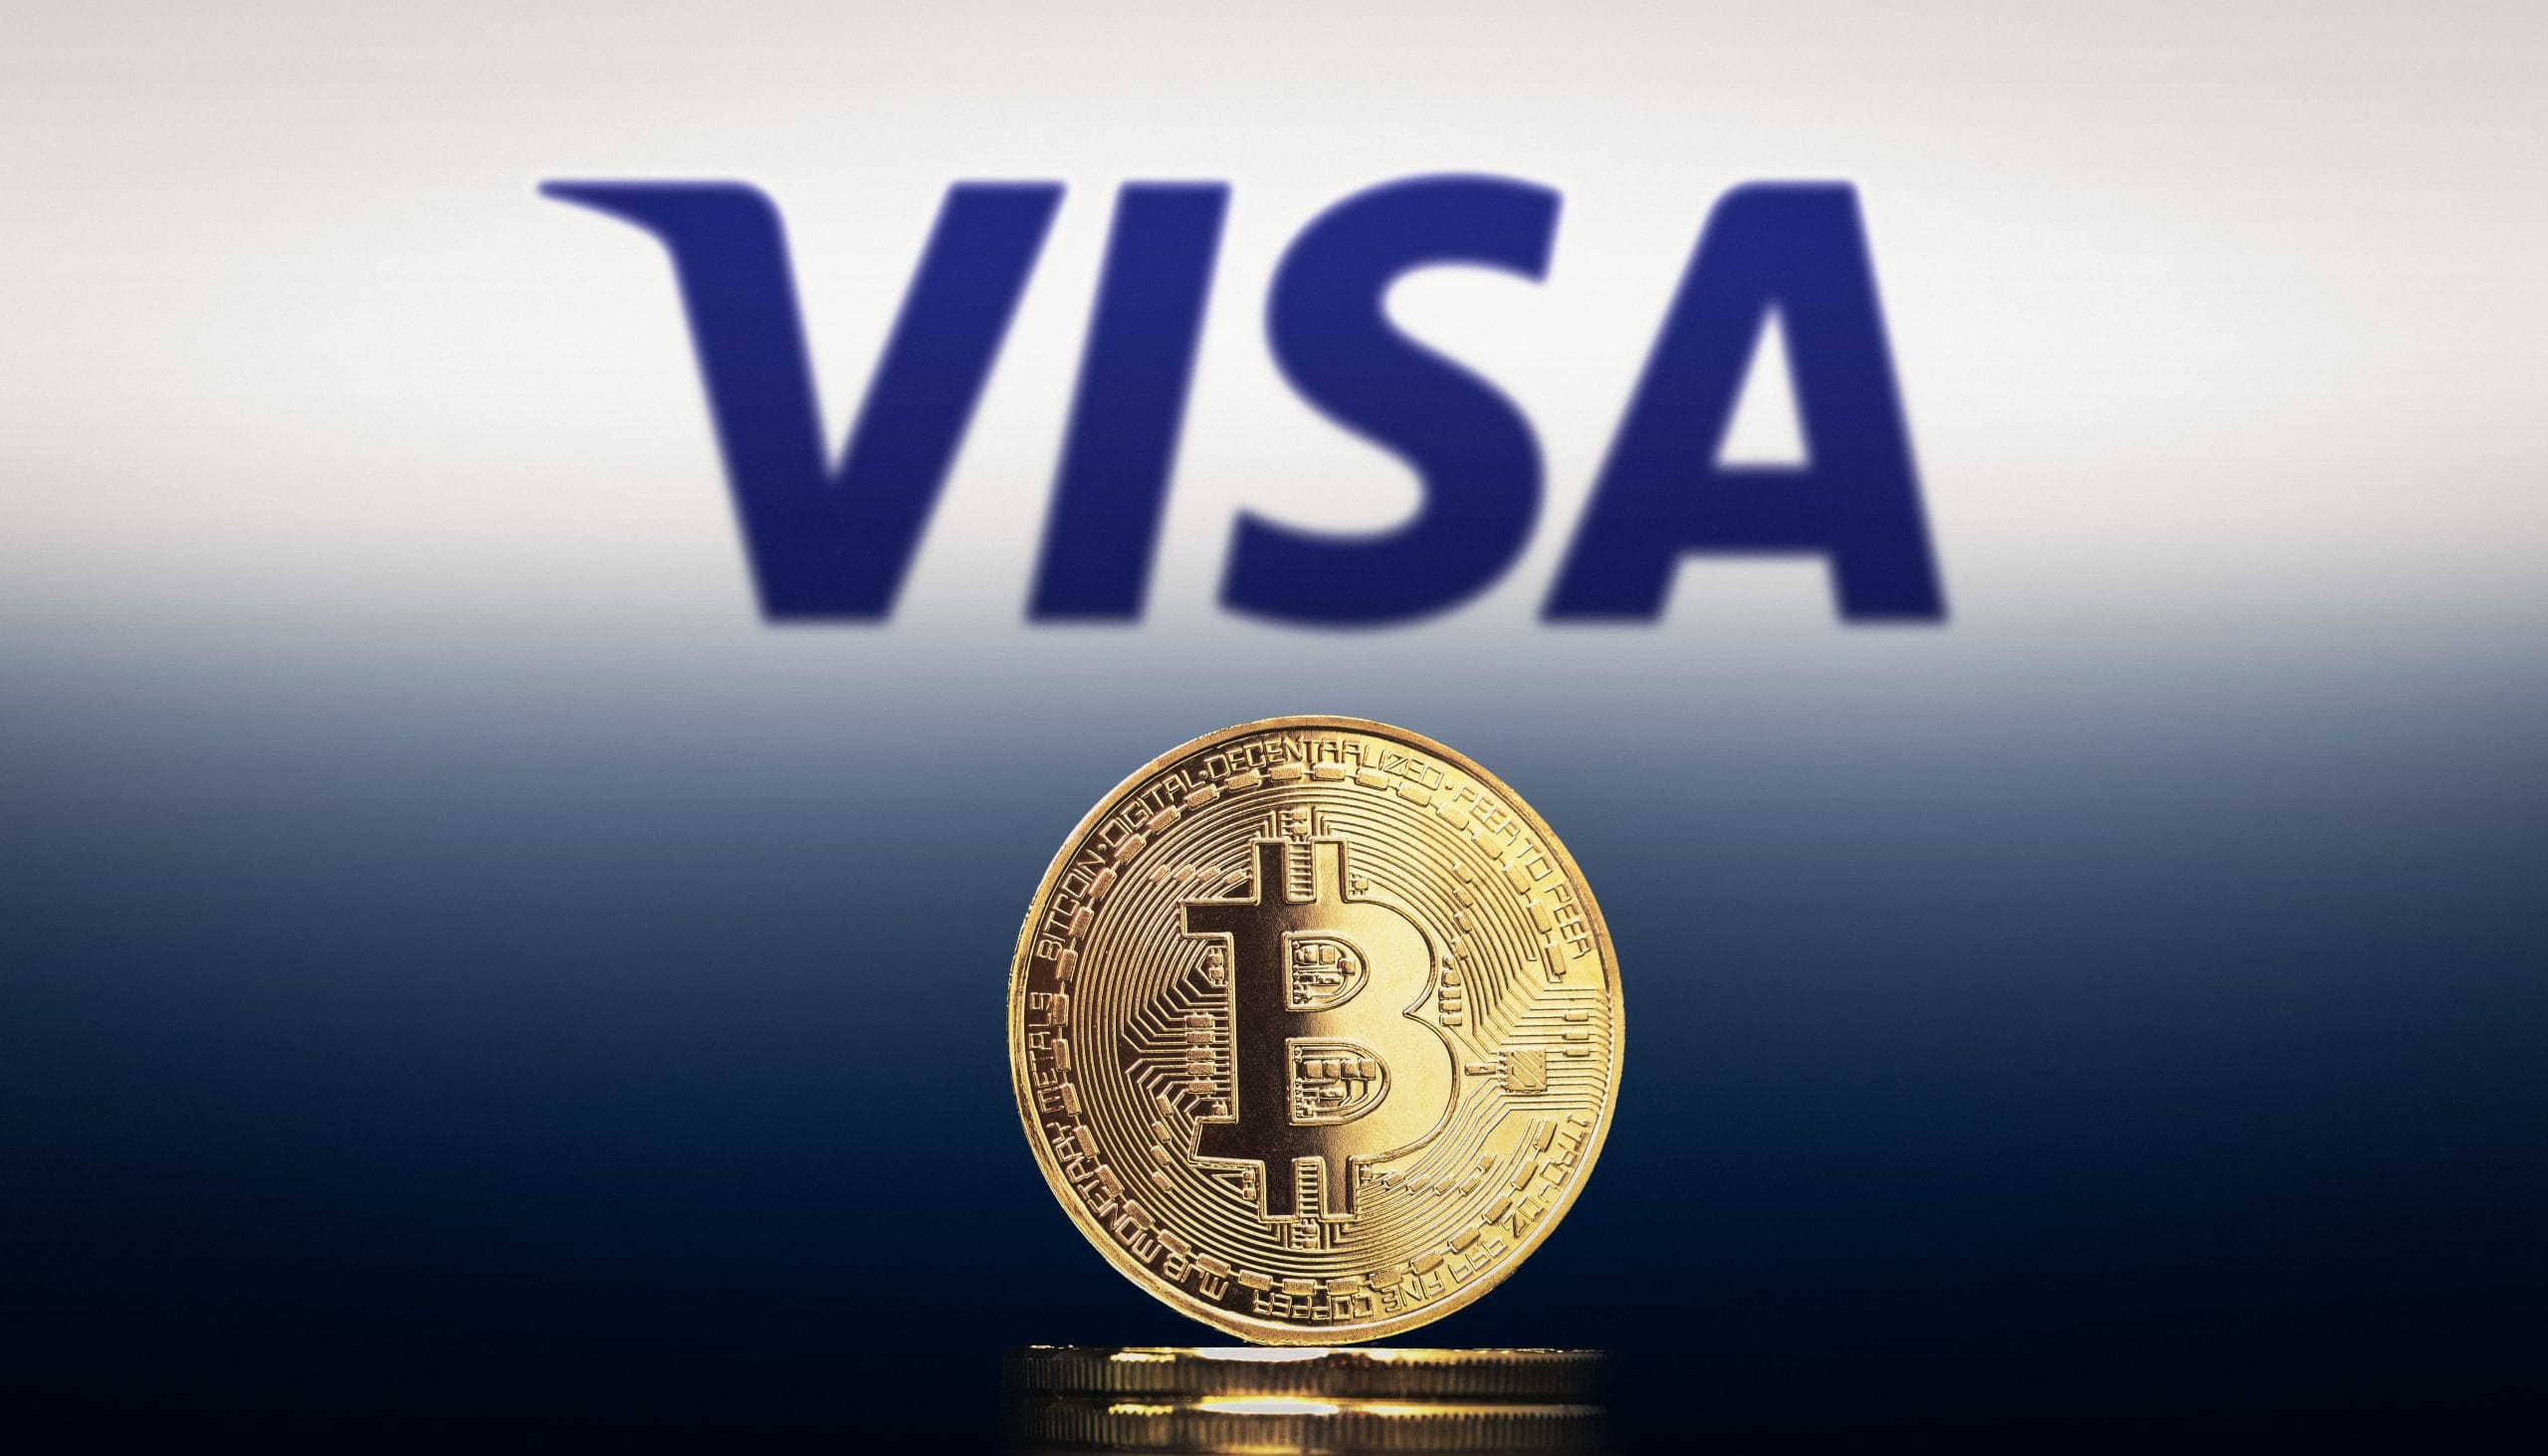 That's how bullish VISA is towards the crypto space